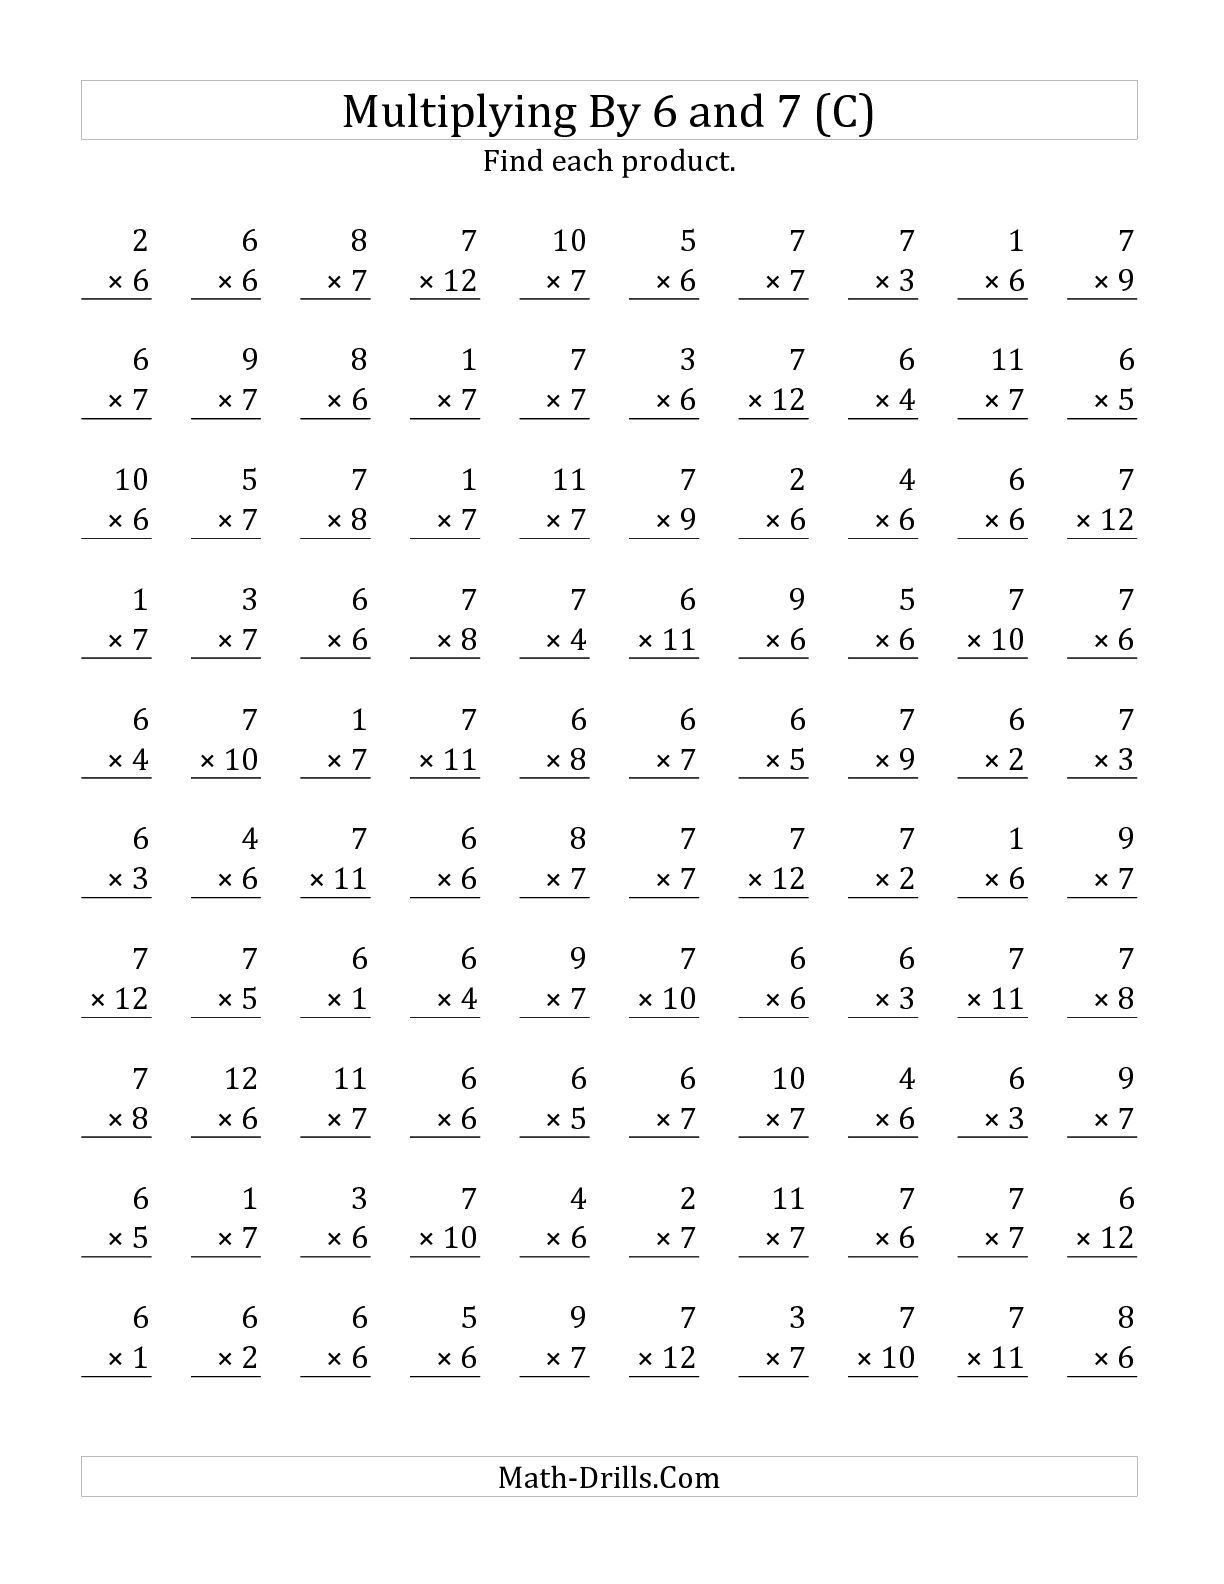 The Multiplying 1 To 12 By 6 And 7 C Math Worksheet From The Multiplication Worksheets Page At